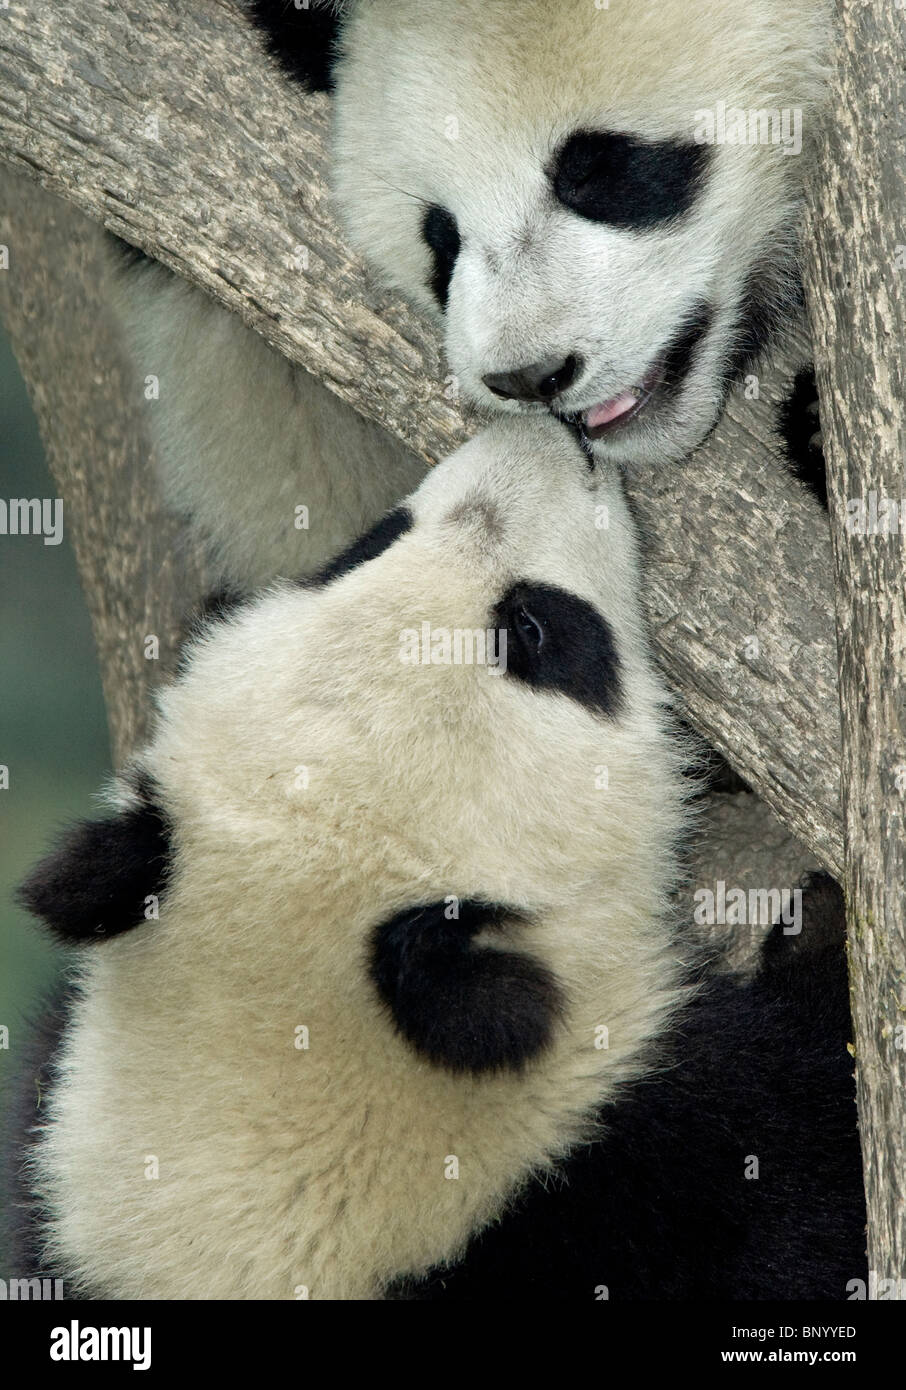 Friendly giant panda, Ailuropoda melanoleuca, cubs at Wolong - Stock Image